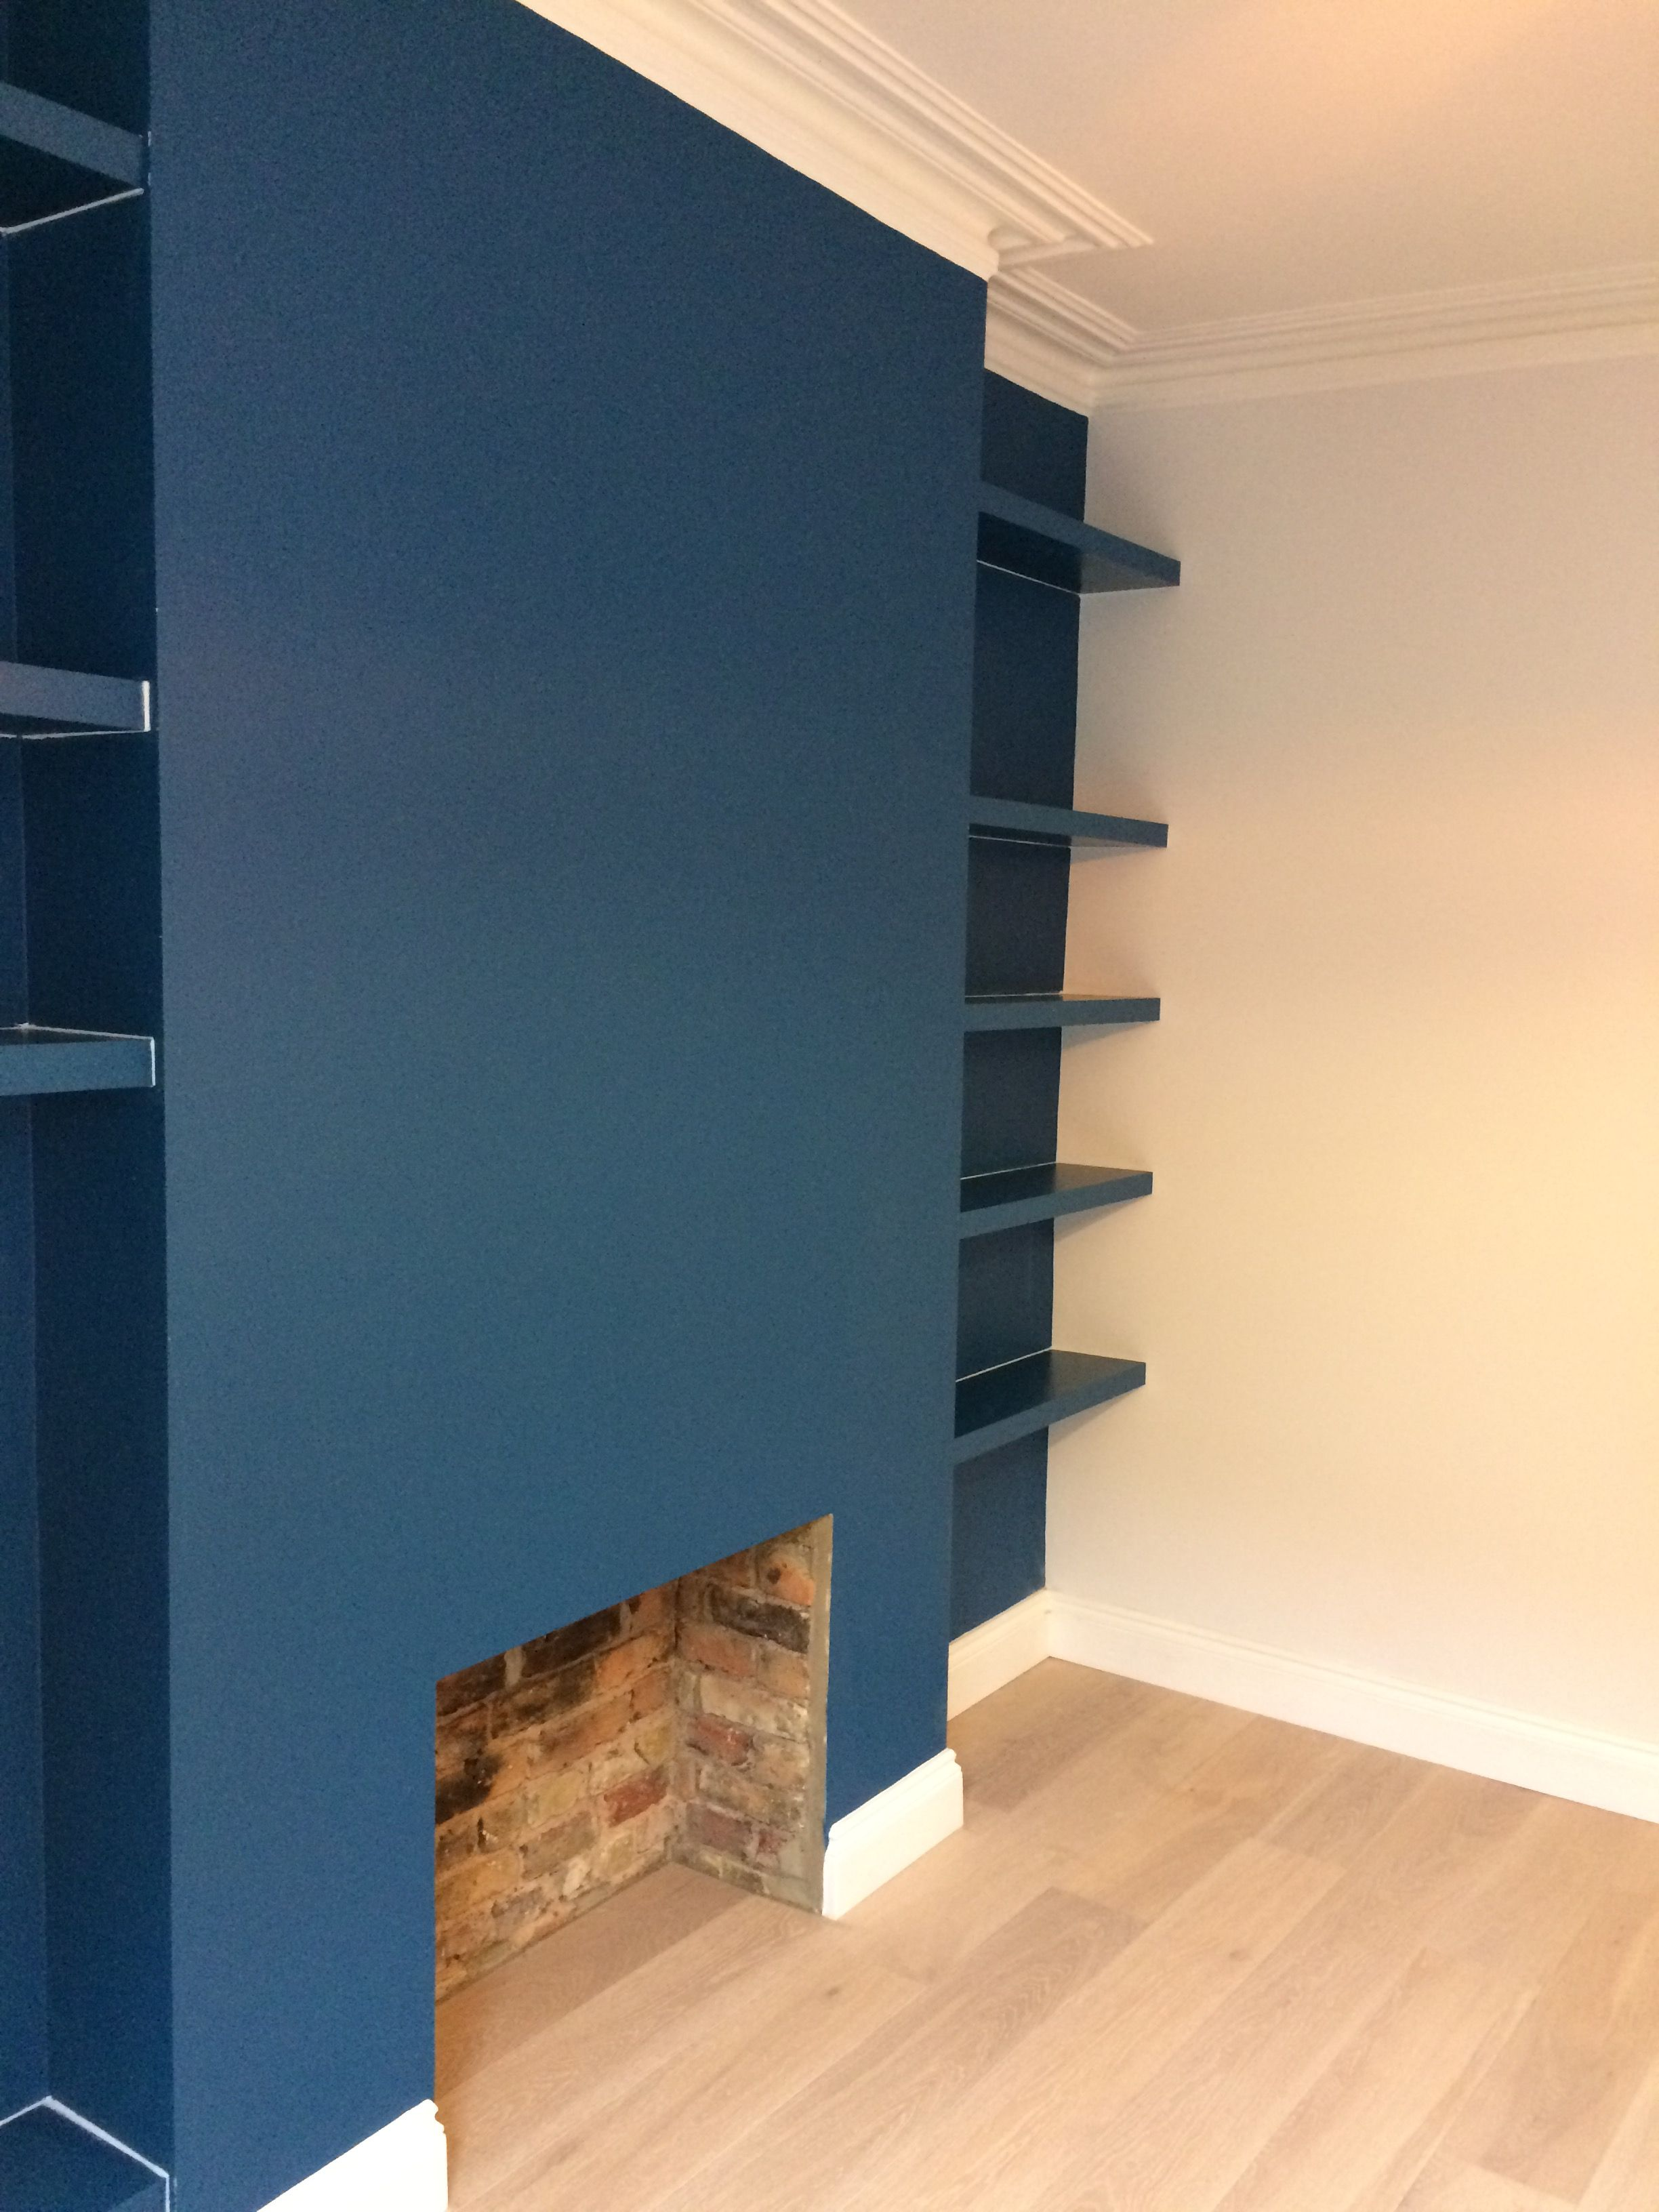 Alcove Shelves Primed Painted Dark Blue Caulked Ready